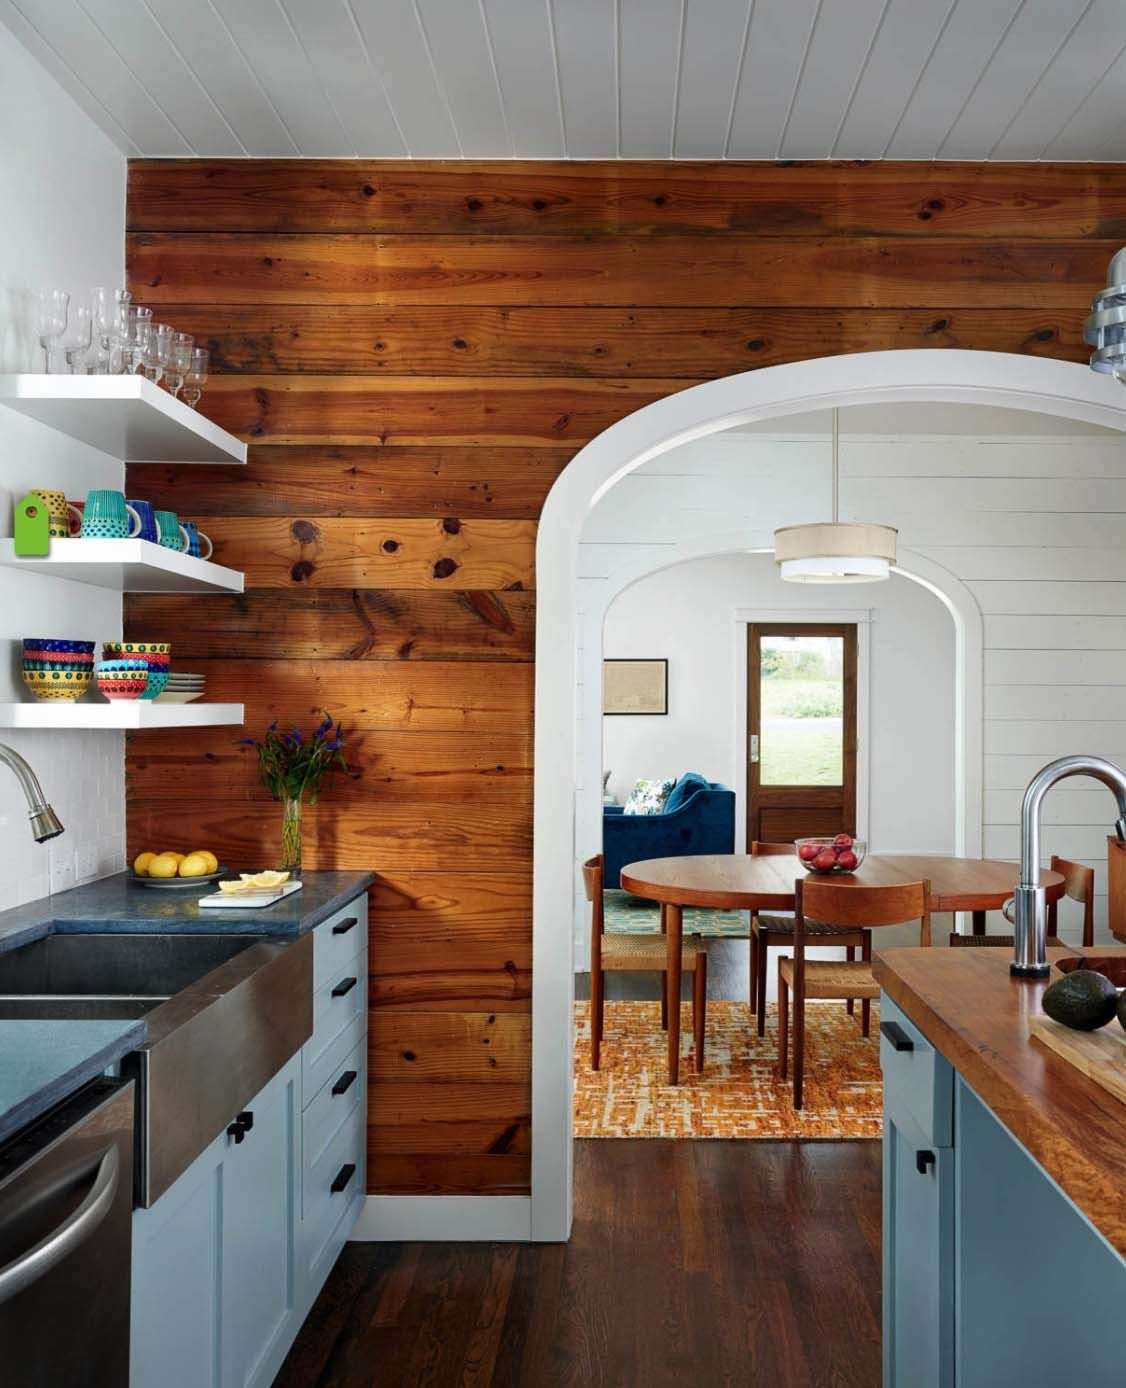 Consider Painted Or Stained Shiplap On Walls Instead Of Drywall Wall Ideas Home 06 1 Kindesign